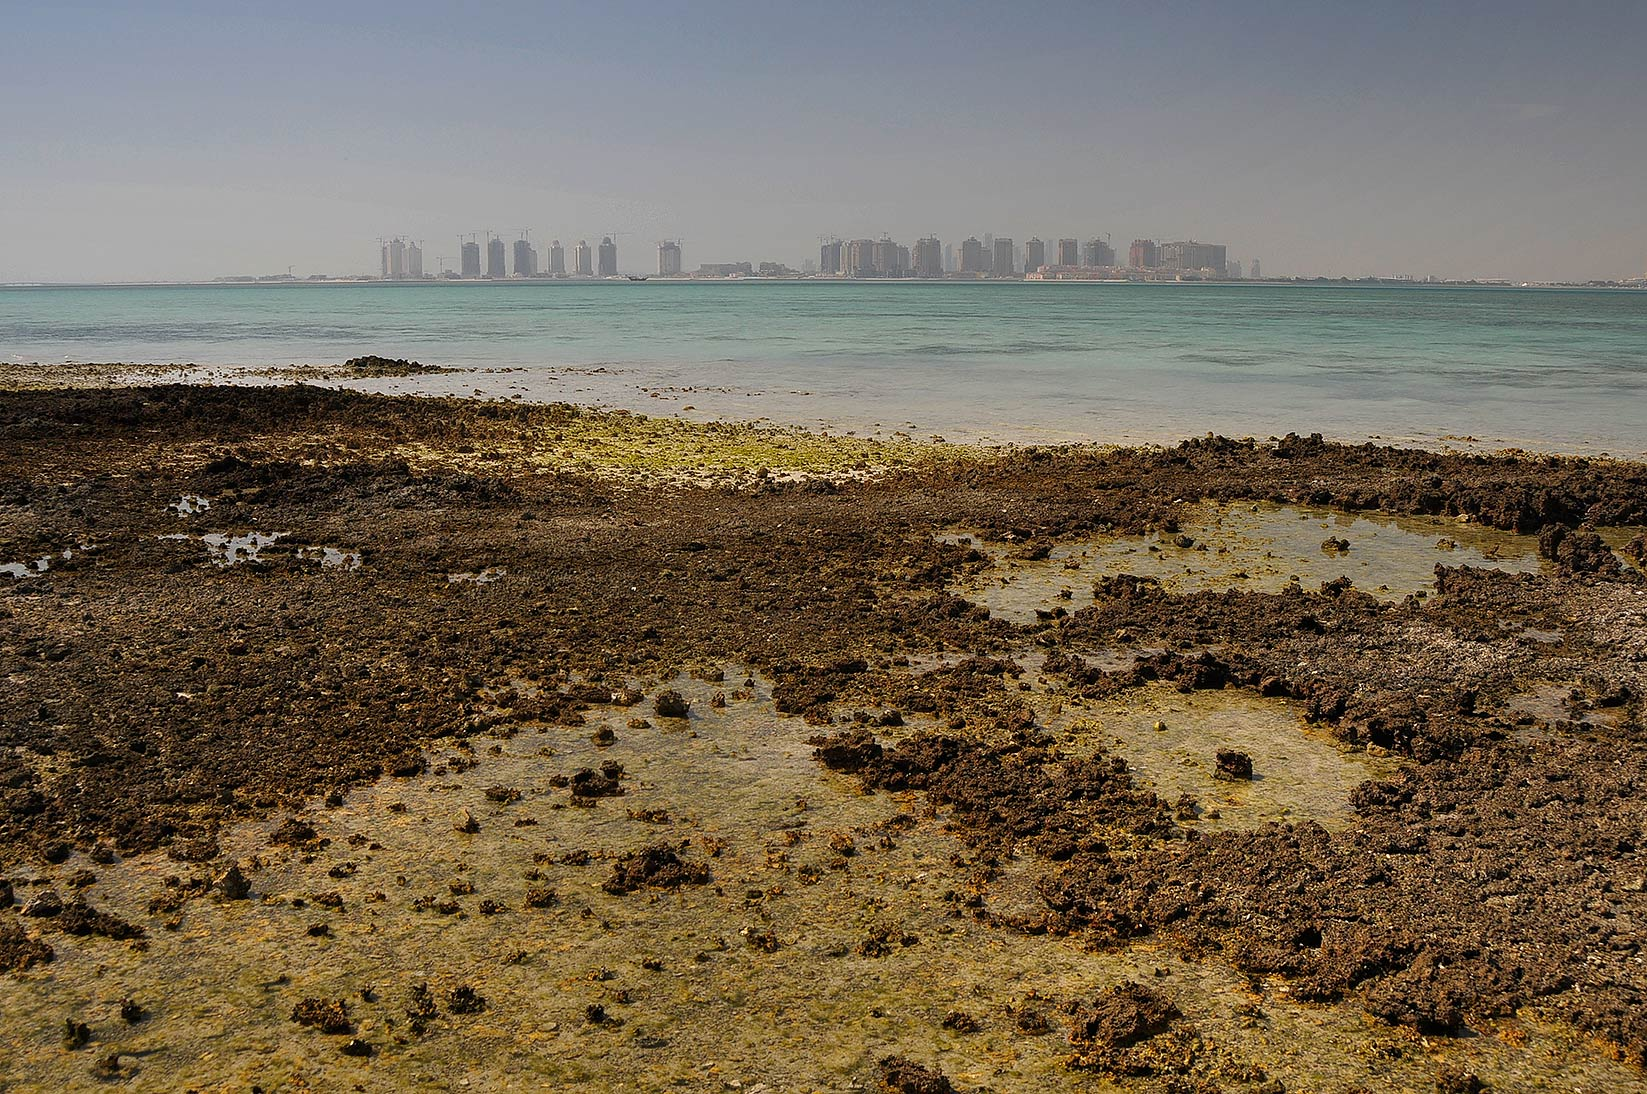 Shell fragments cemented into beachrock in Al Aaliya Island (Jazirat al Aliyah). Qatar